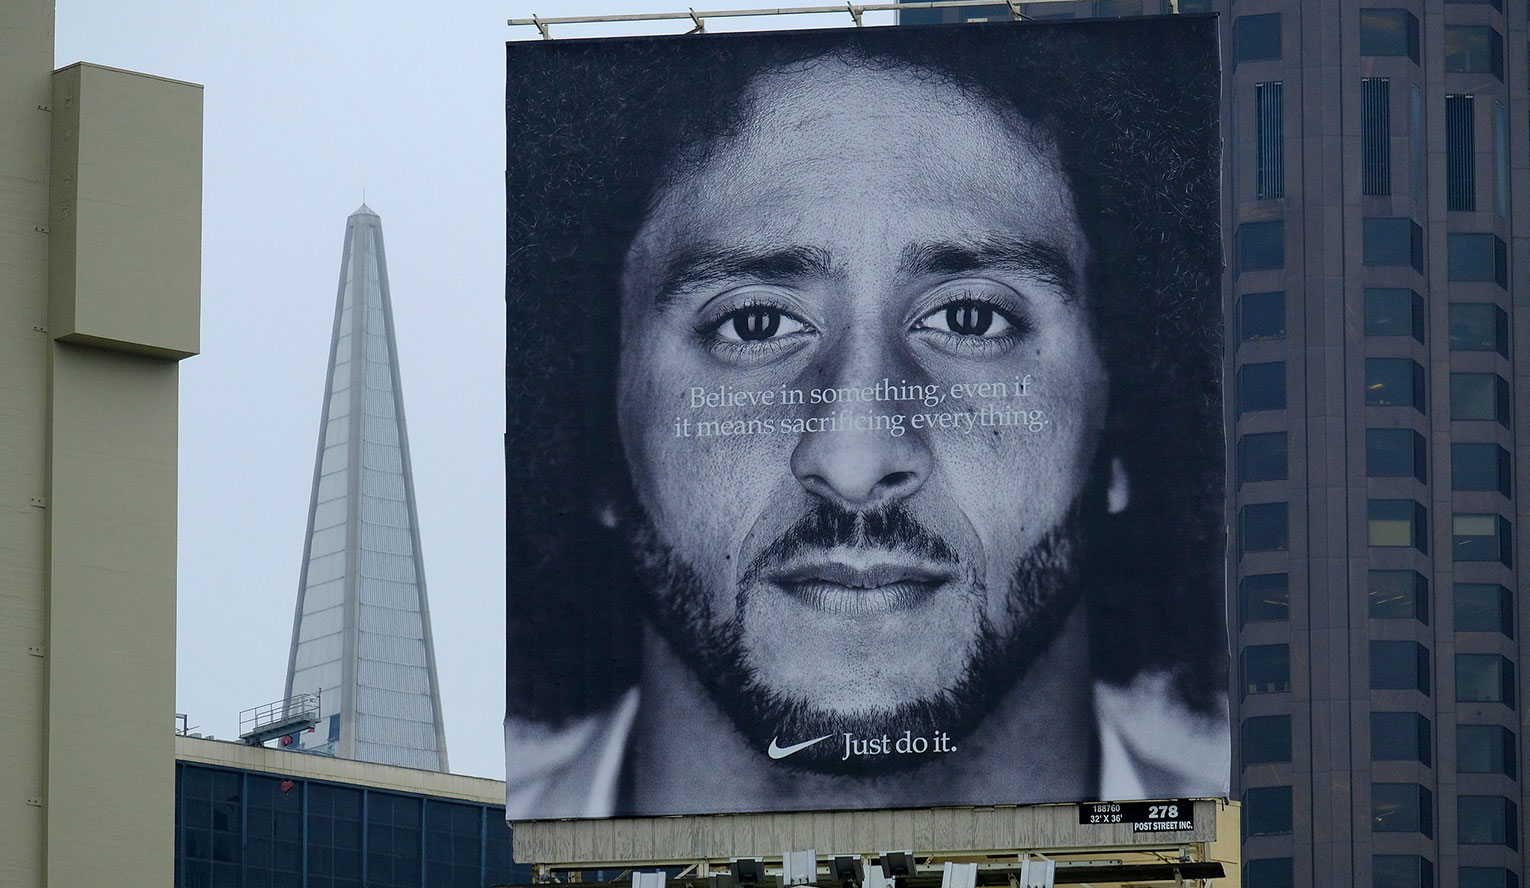 "A giant billboard Nike ad featuring the face of kneeling quarterback Colin Kaepernick with the text, ""Believe in something, even if it means sacrificing everything. Just do it."" Source: The New York Times."